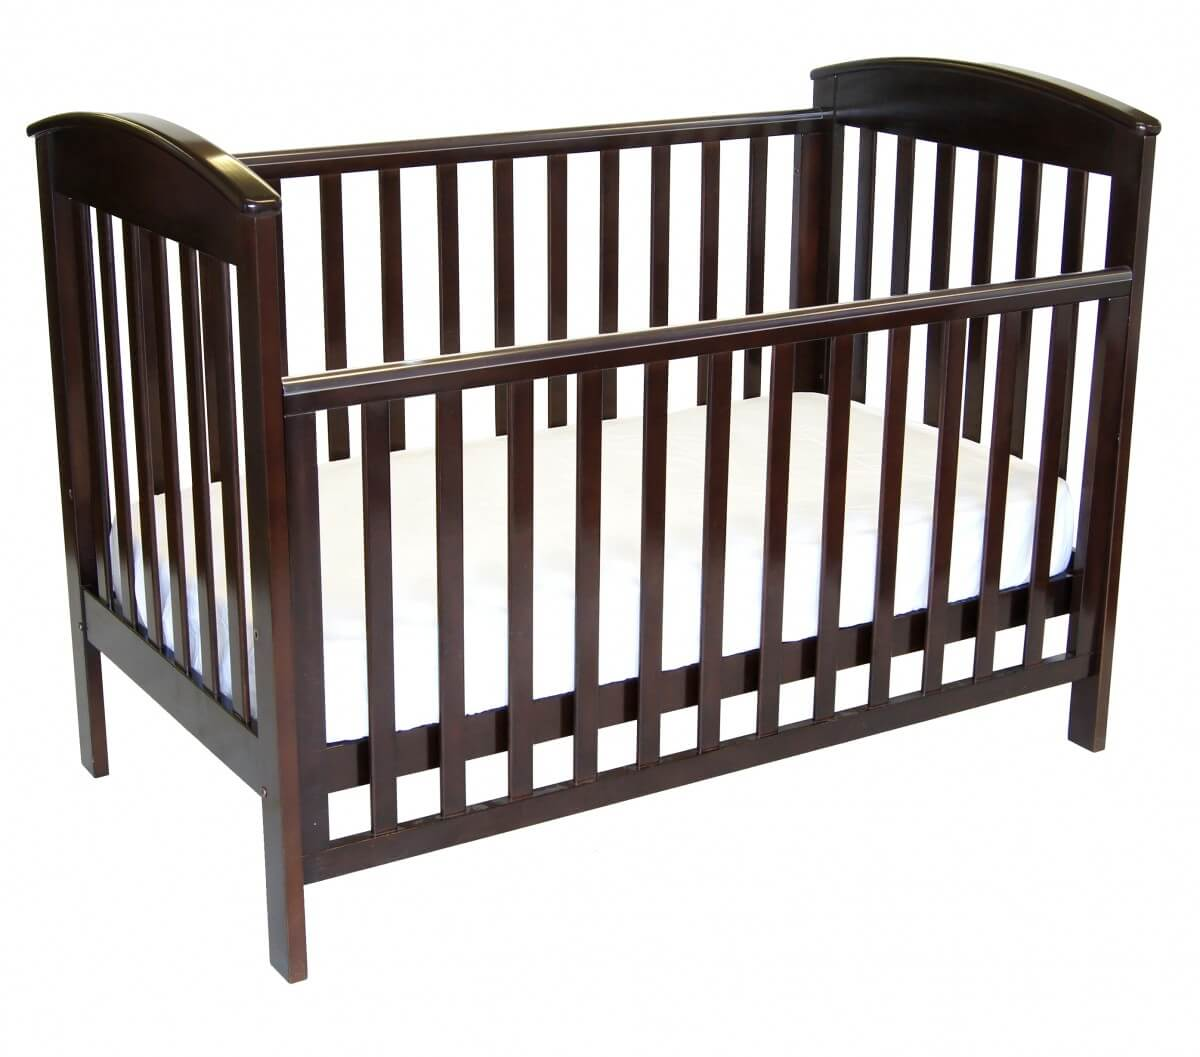 Babyhood Classic Curve Cot Drop side Down